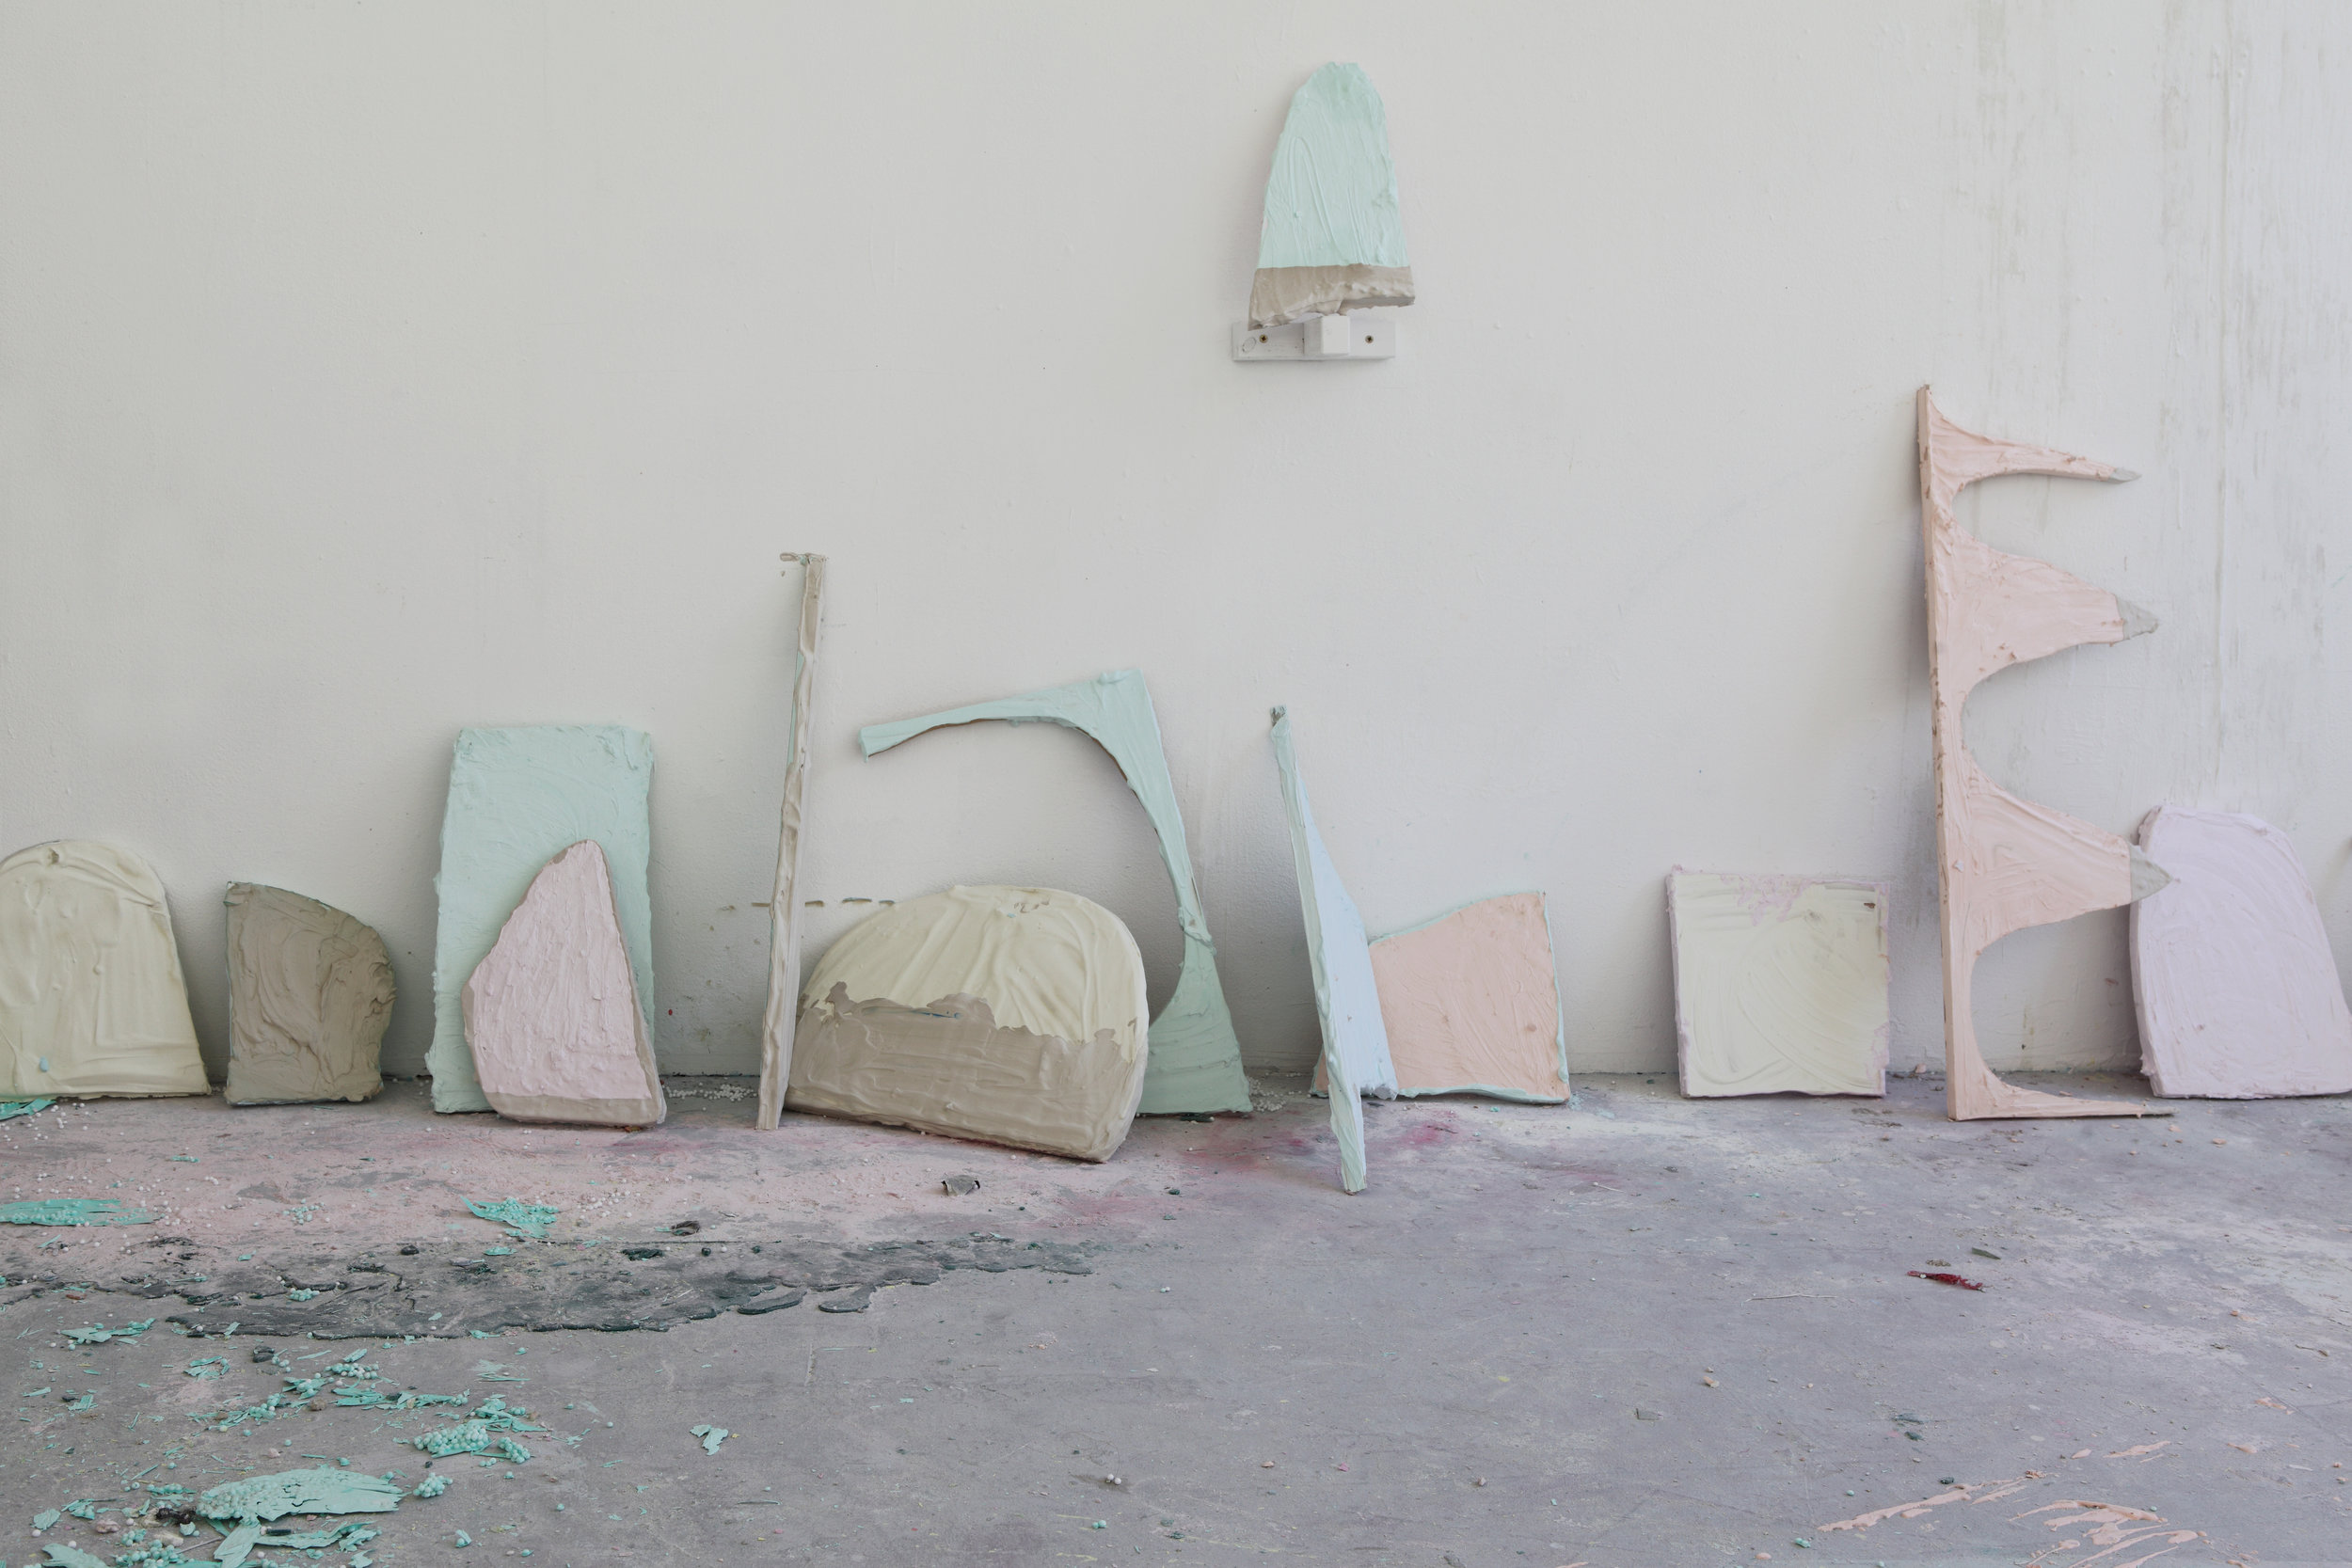 Studio view 2014 - Wood, plaster, pigments, various sizes 30 - 60 cm, Maastricht, 2014